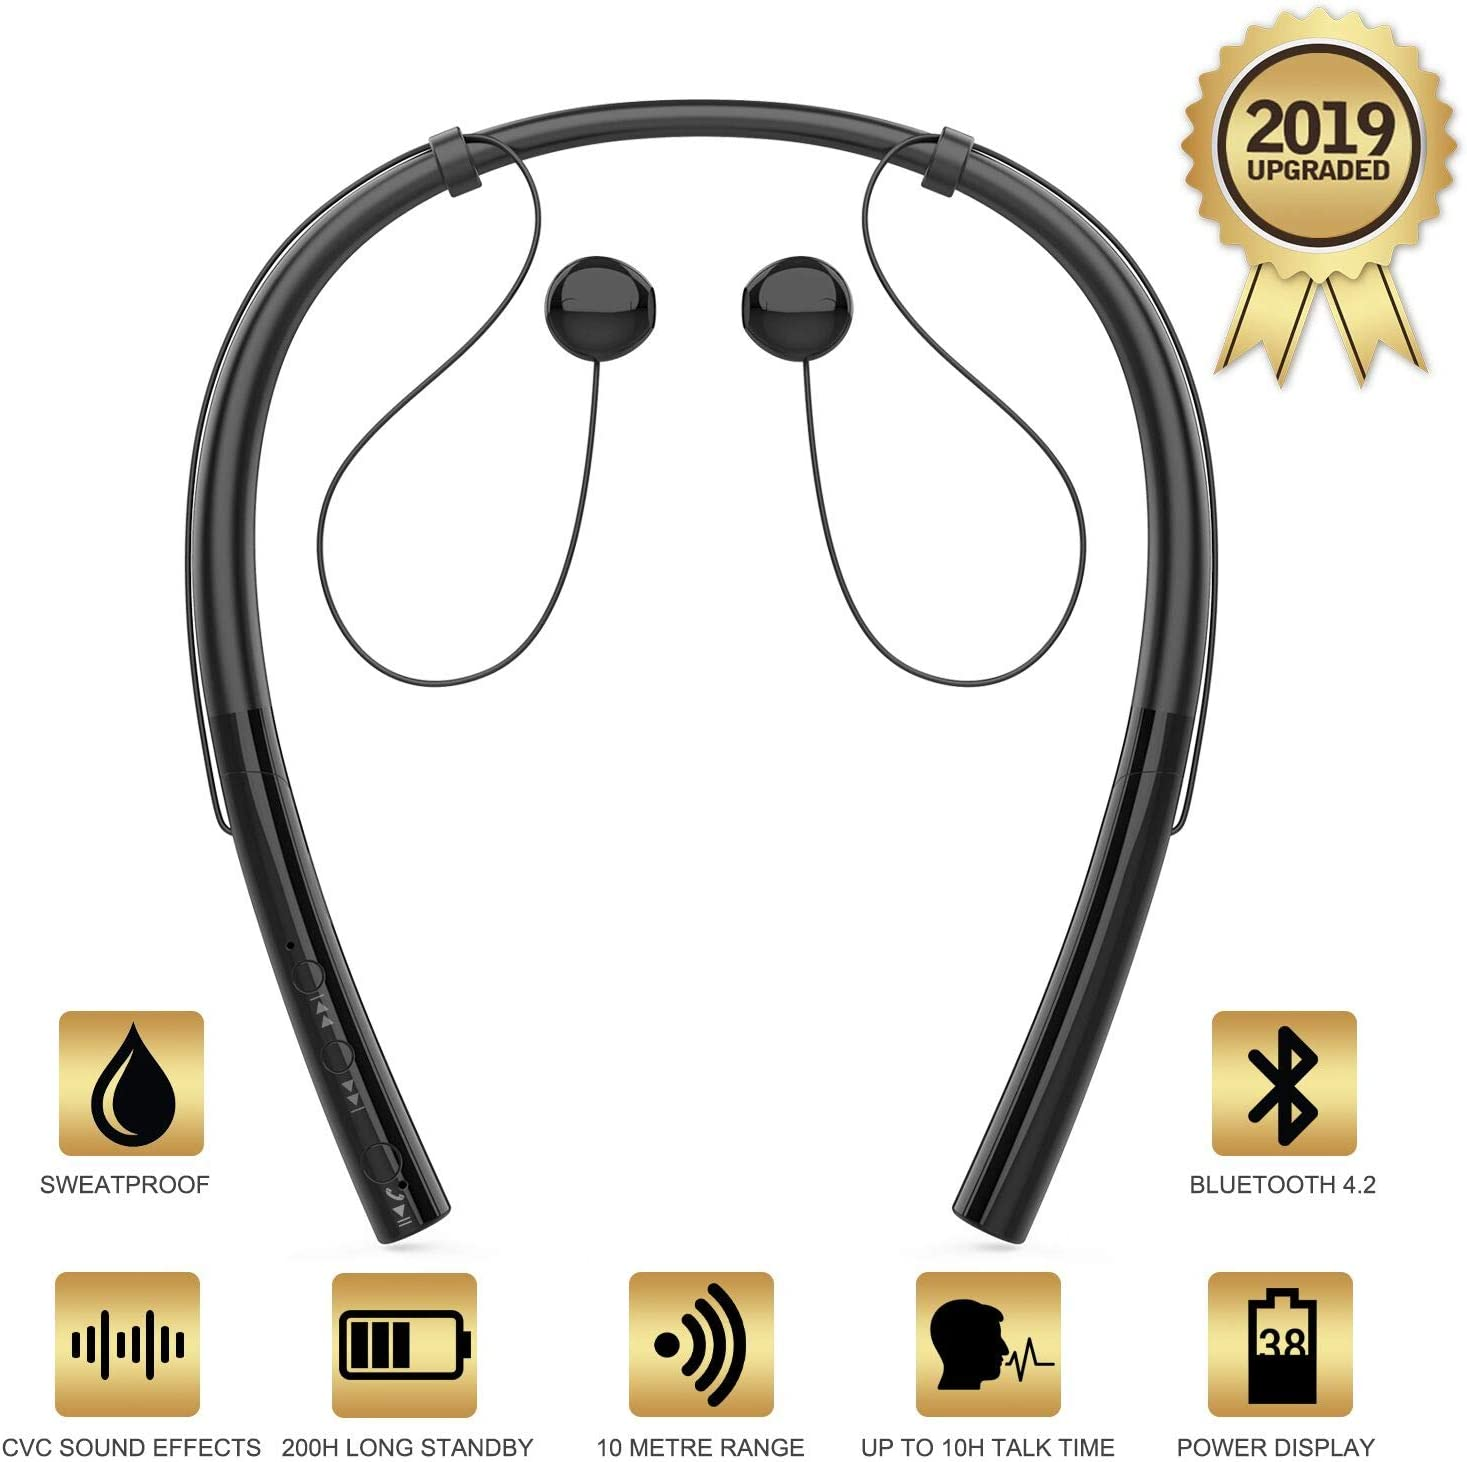 Amazon Com Hbq V4 2 Bluetooth Running Headphones Wireless Neckband Headset Sport Earphones Cvc Noise Canceling Bluetooth Earbuds With Microphone For Iphone X 8 7 6 Android Samsung Home Audio Theater